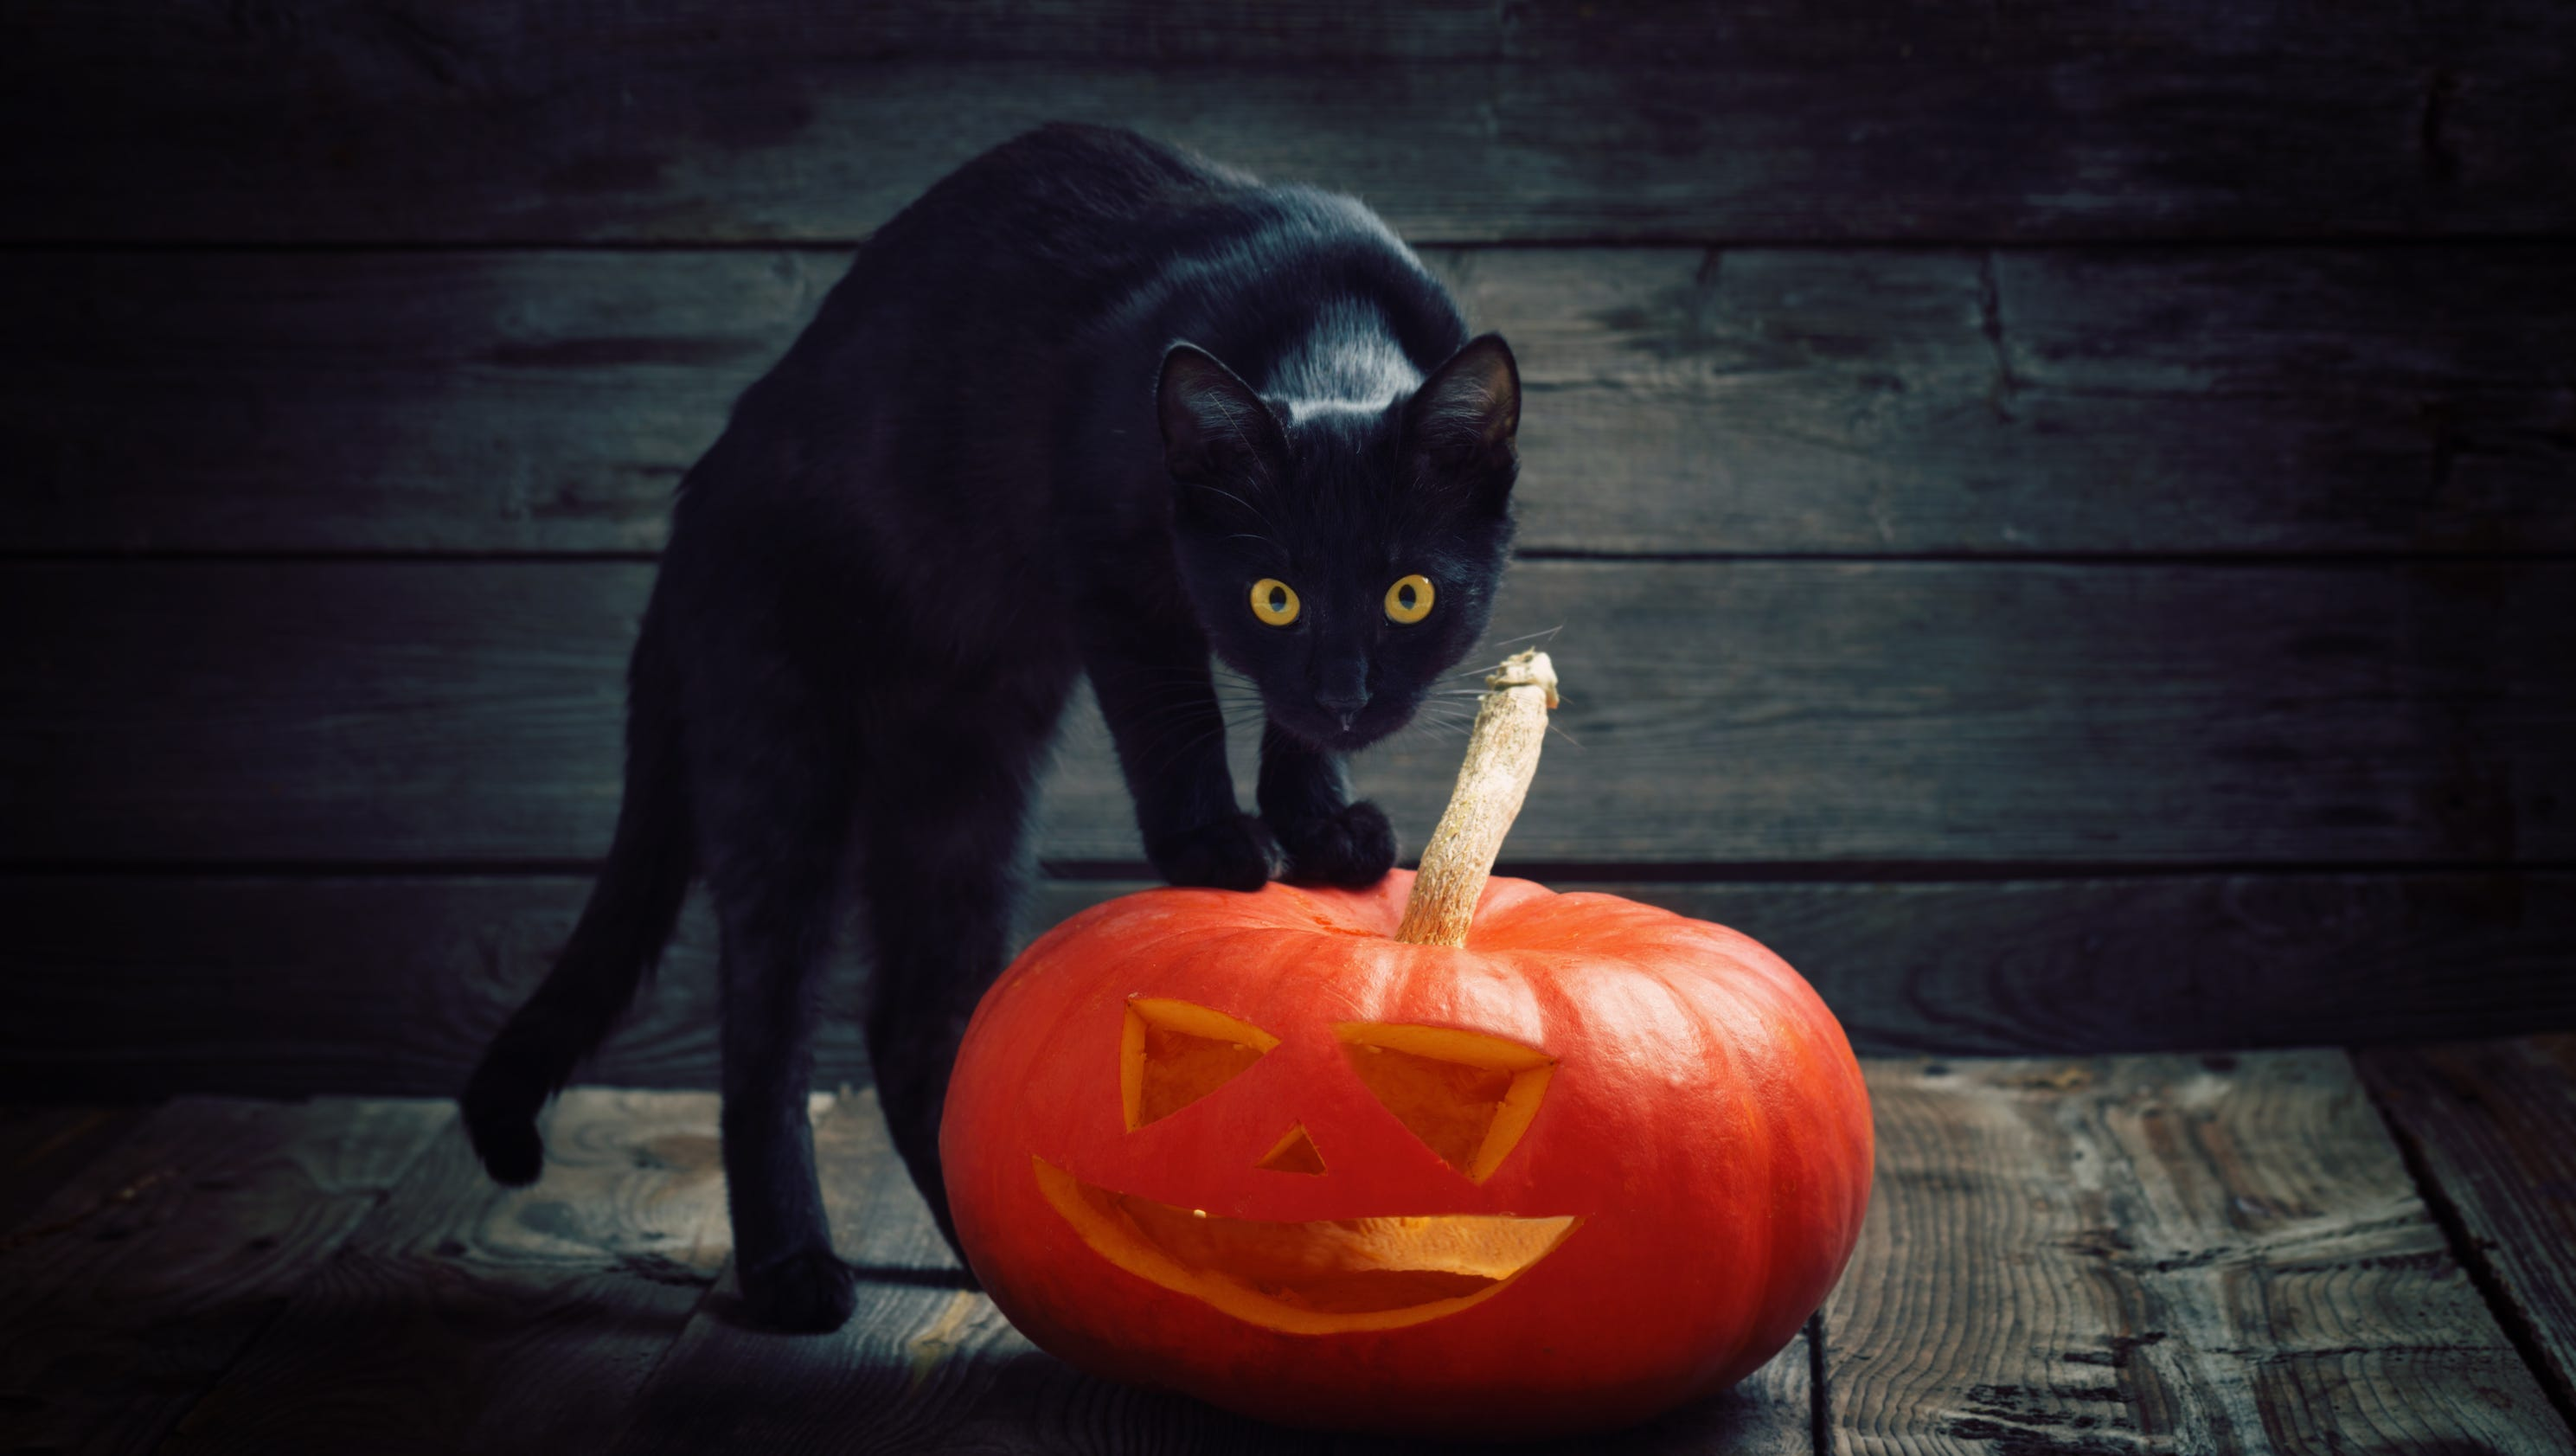 Black Cat In A Pumpkin